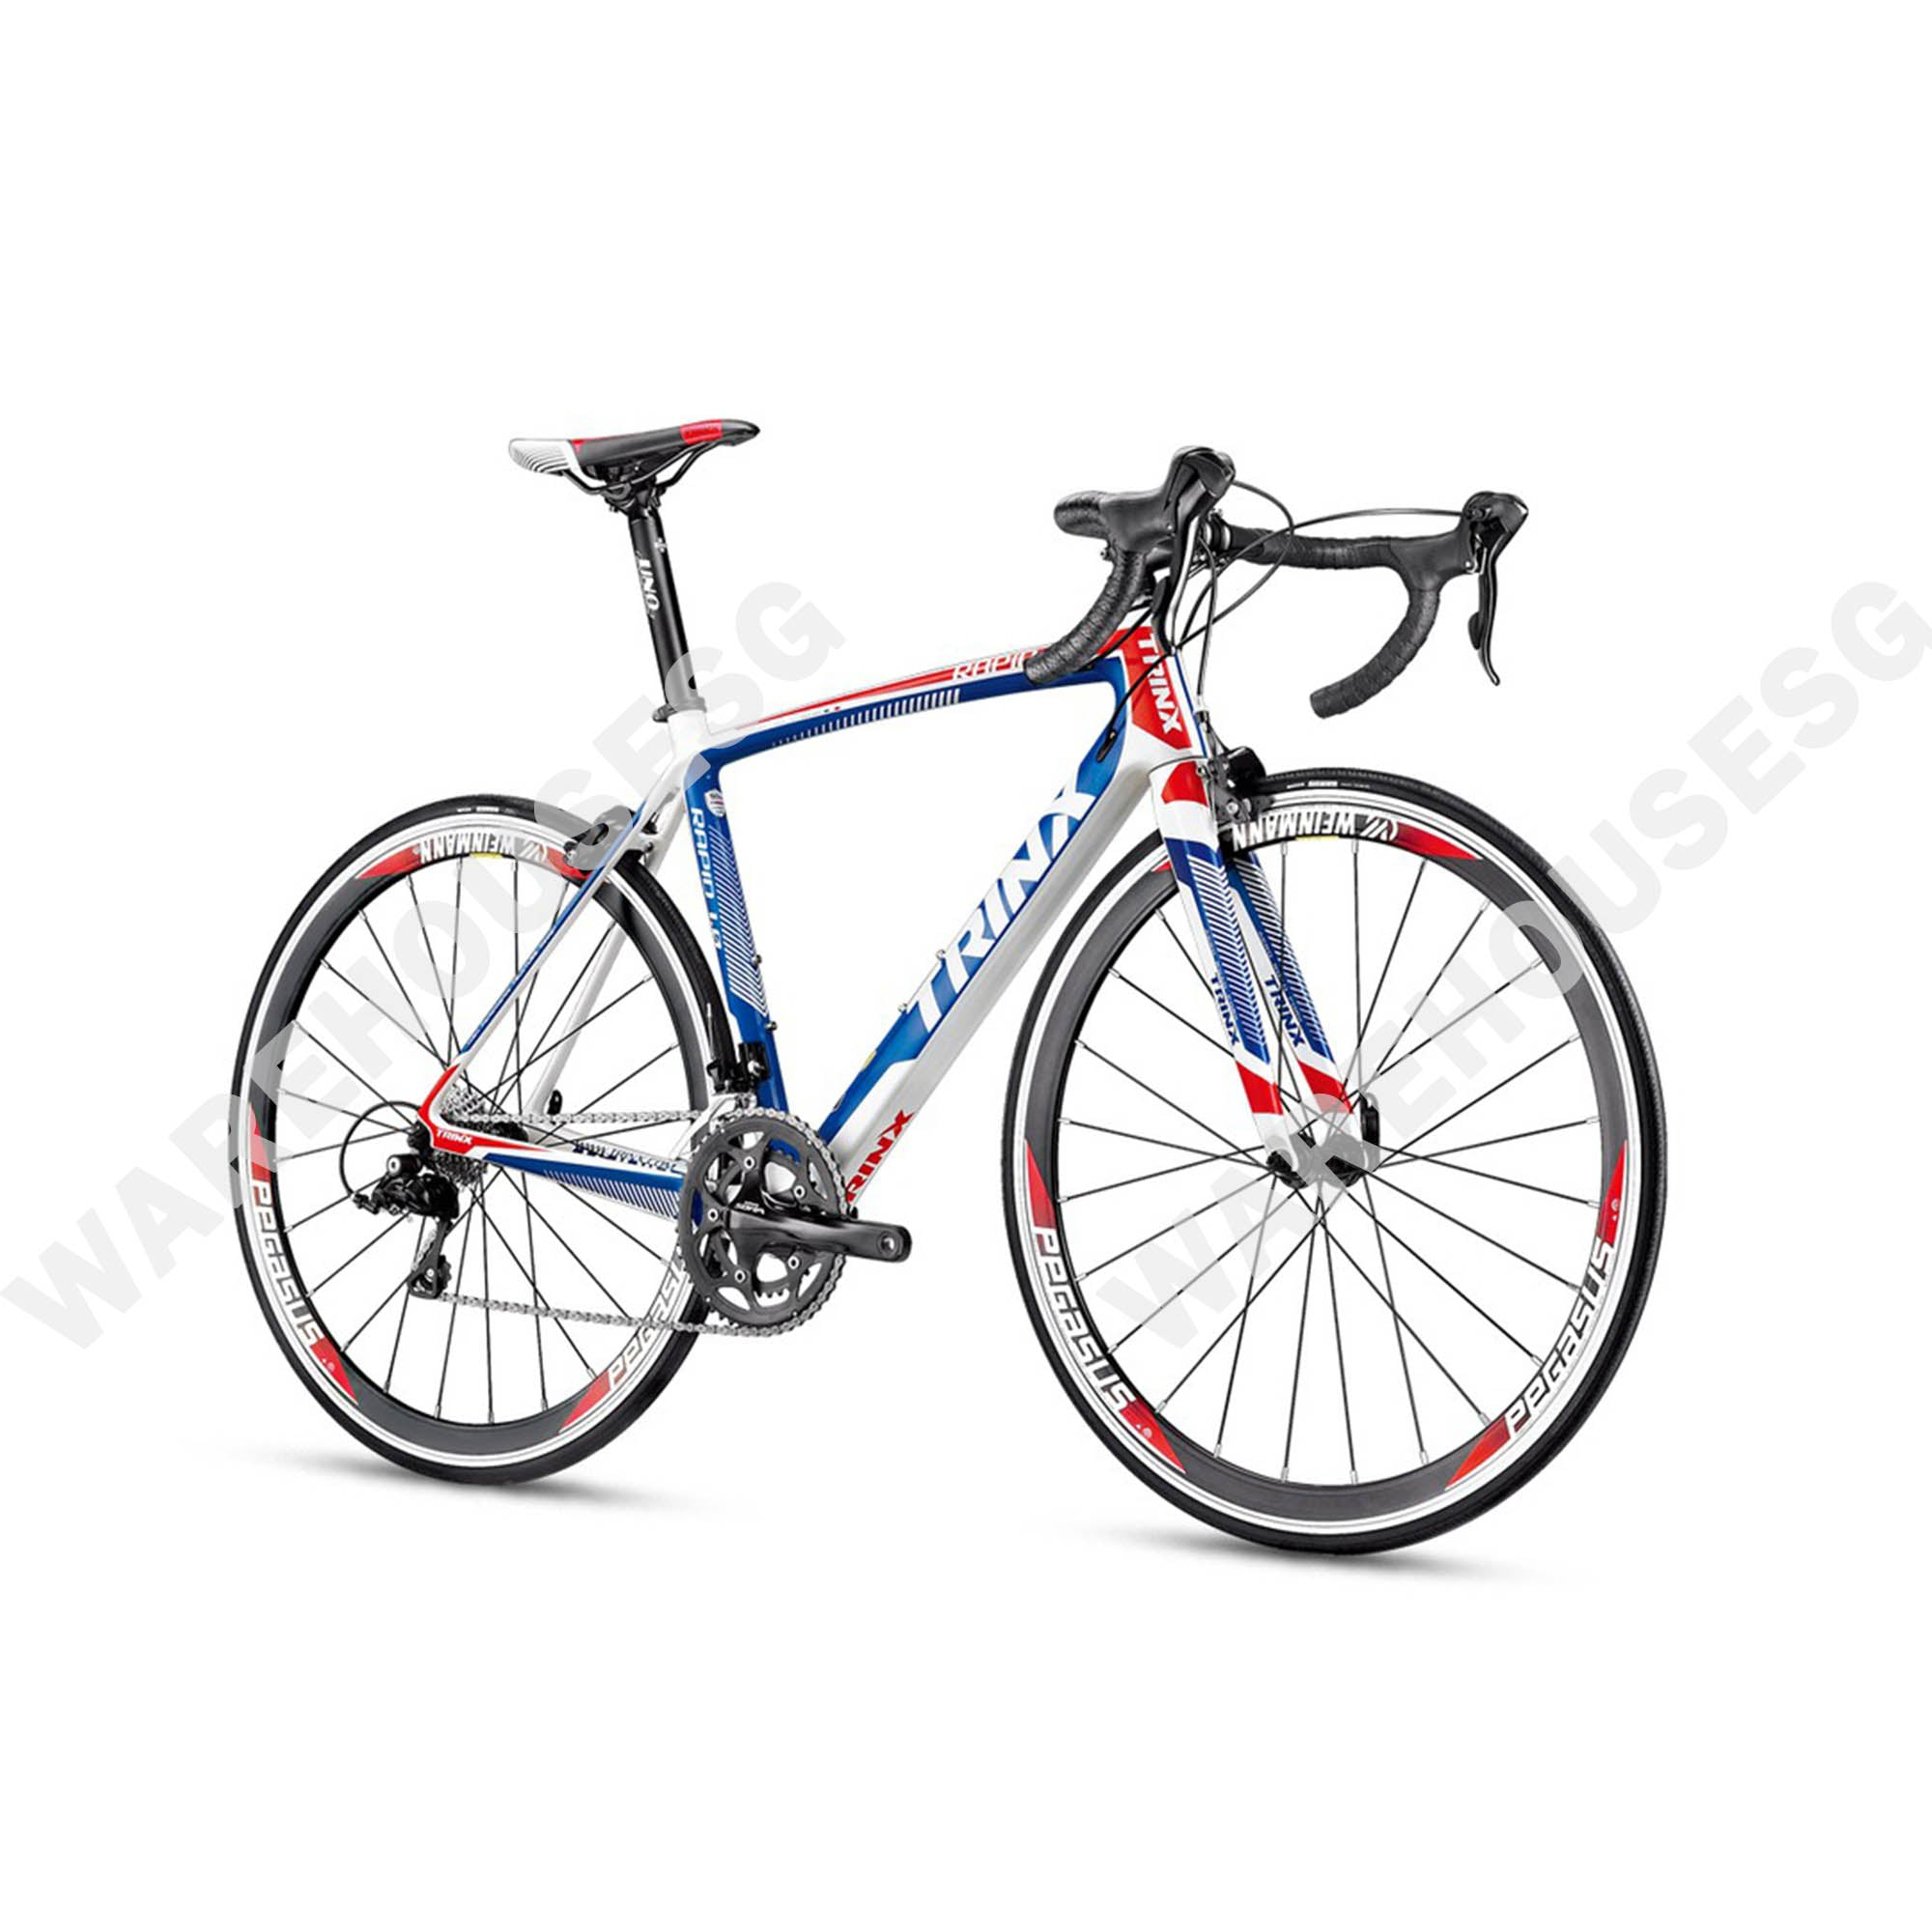 TRINX Rapid 1.0 700C Premium Road Bike